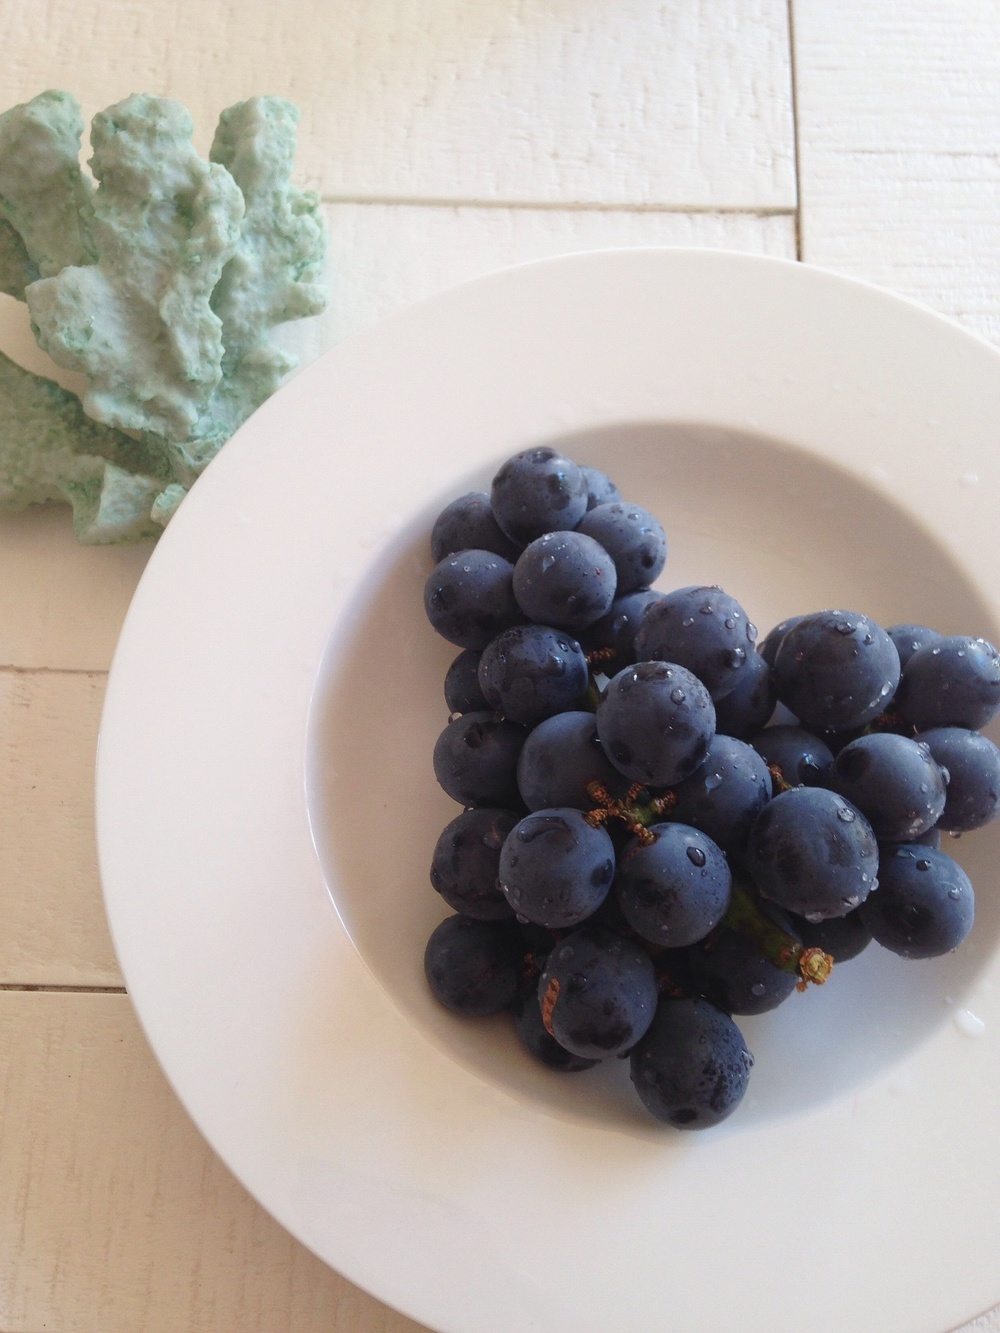 Y & I bought a huge box of these delicious grapes so we've been snacking on these sapphire jewels nonstop.